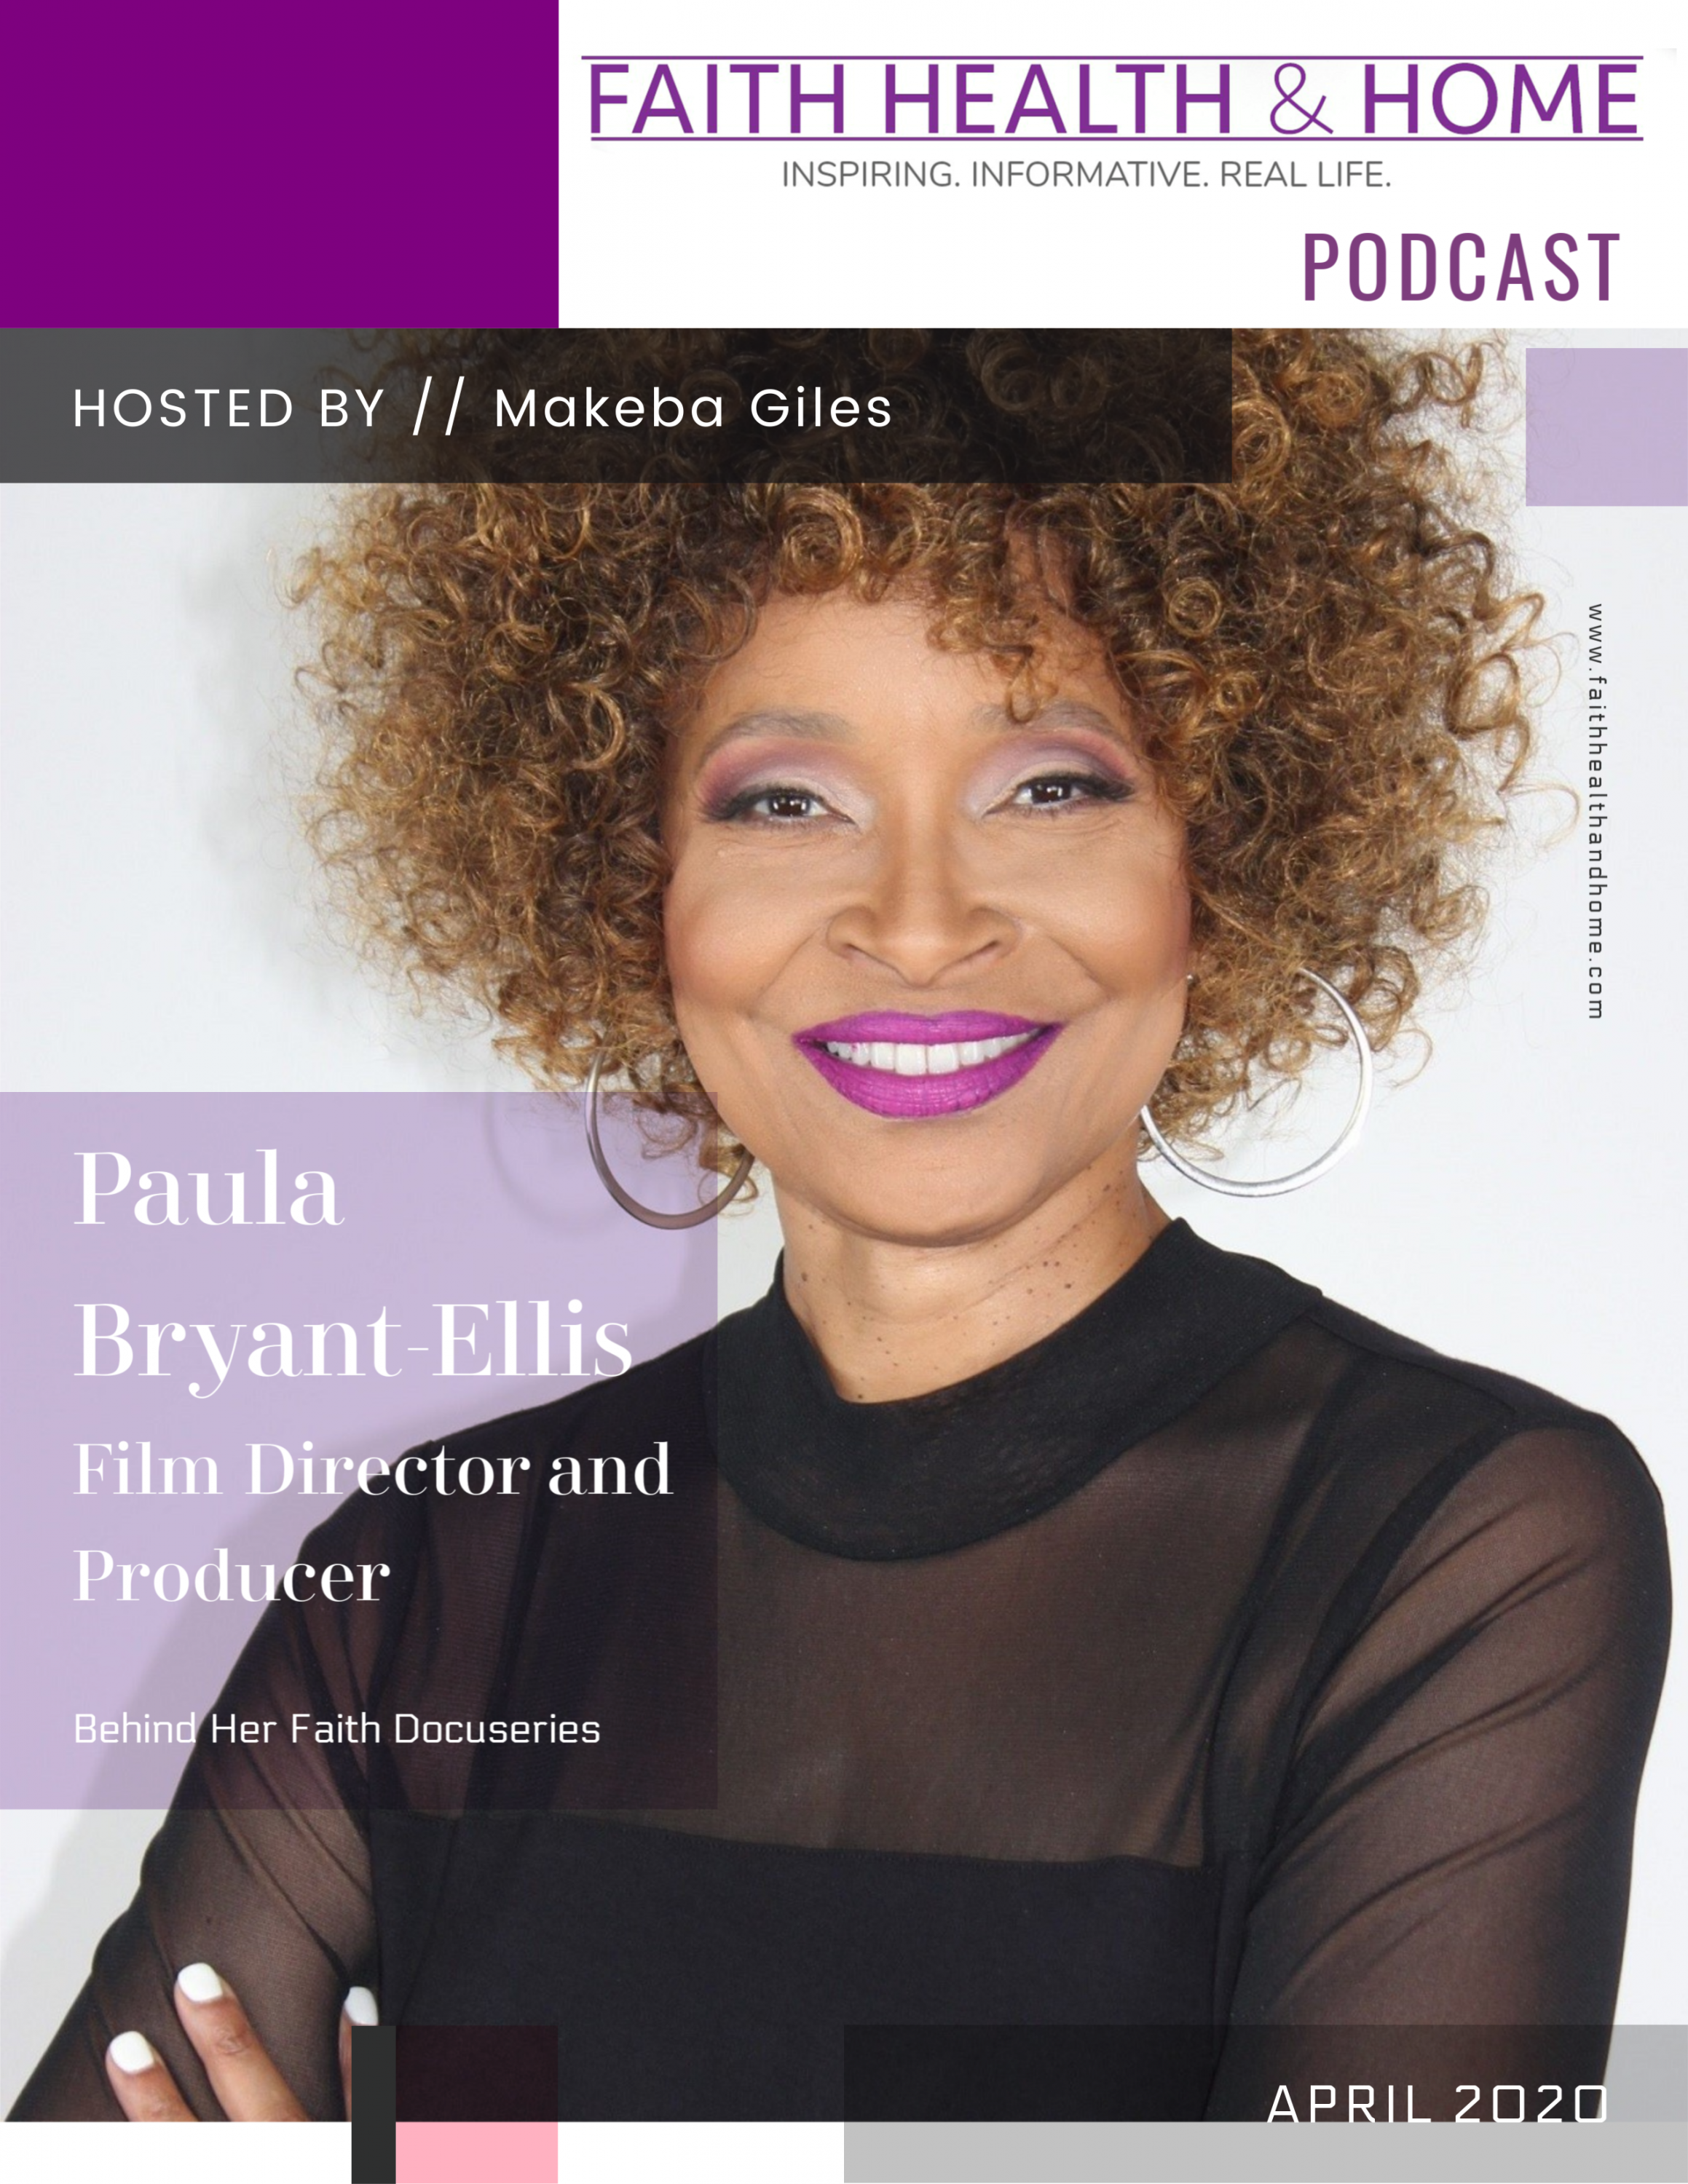 MaKEBA-gILES-fAITH-HEALTH-AND-HOME-PODCAST-PAULA-BRYANT-ELLIS-INTERVIEW-BEHIND-HER-FAITH-DOCUSERIES-